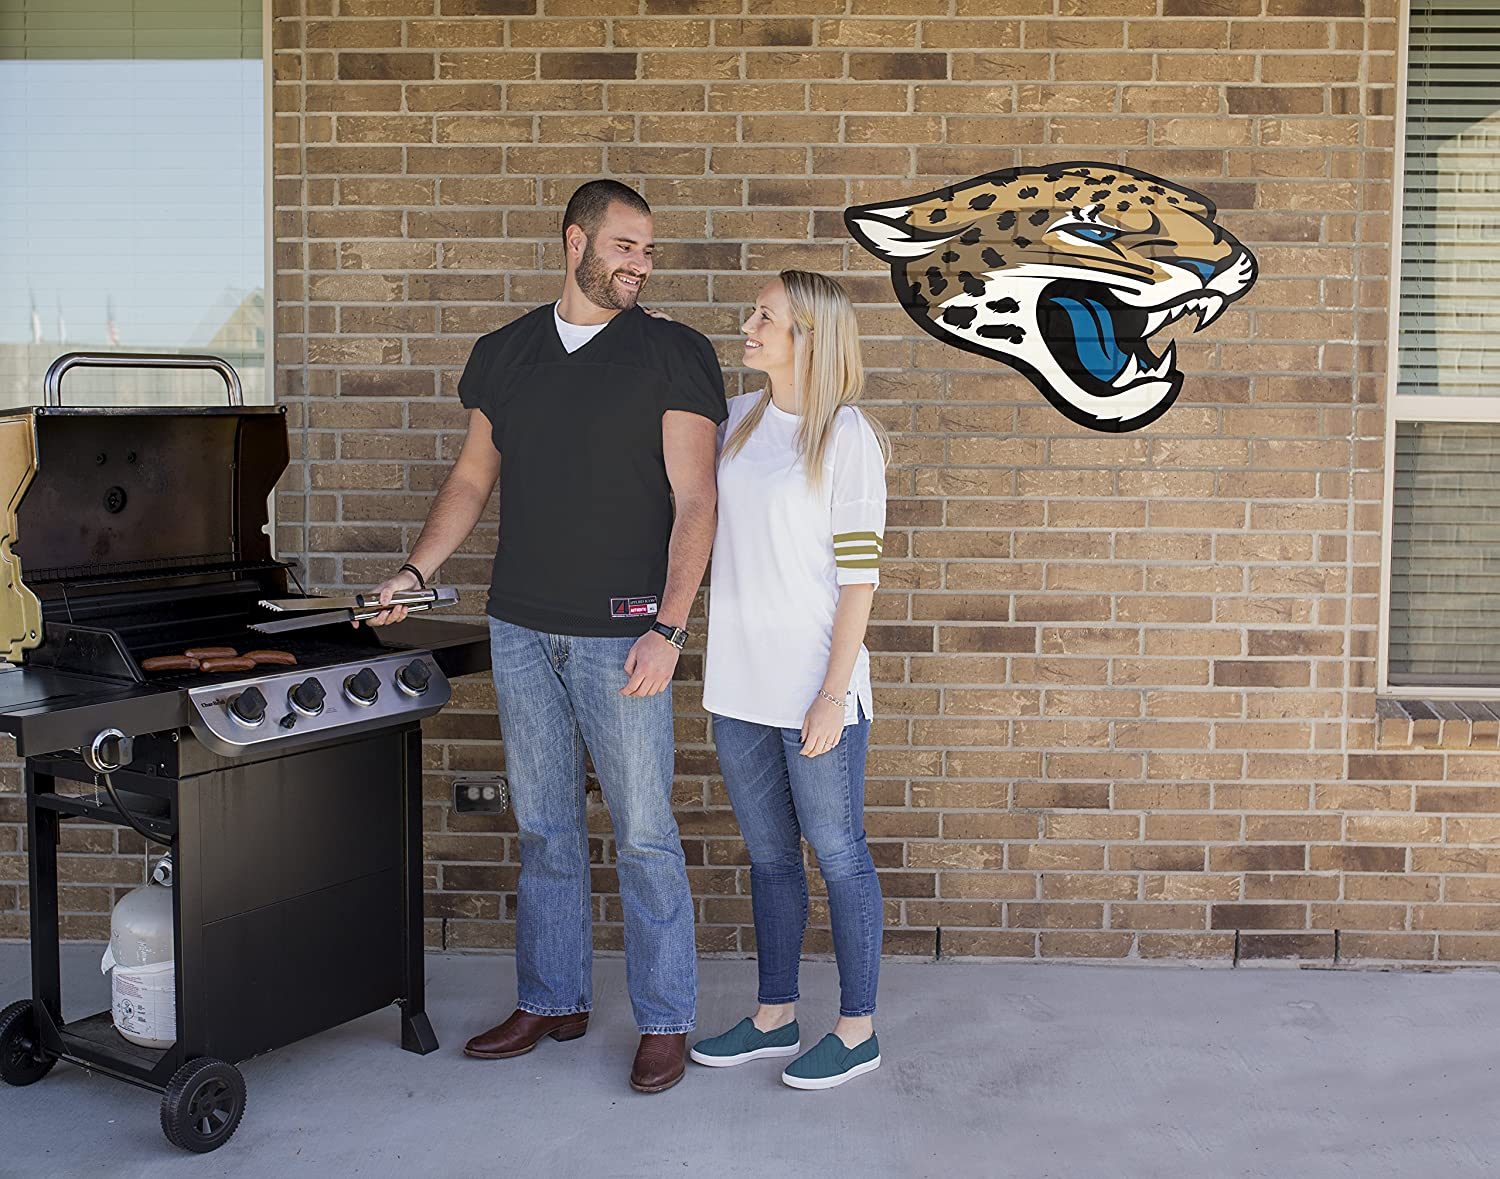 NFL Jacksonville Jaguars Outdoor Large Primary Logo Graphic Decal Applied Icon